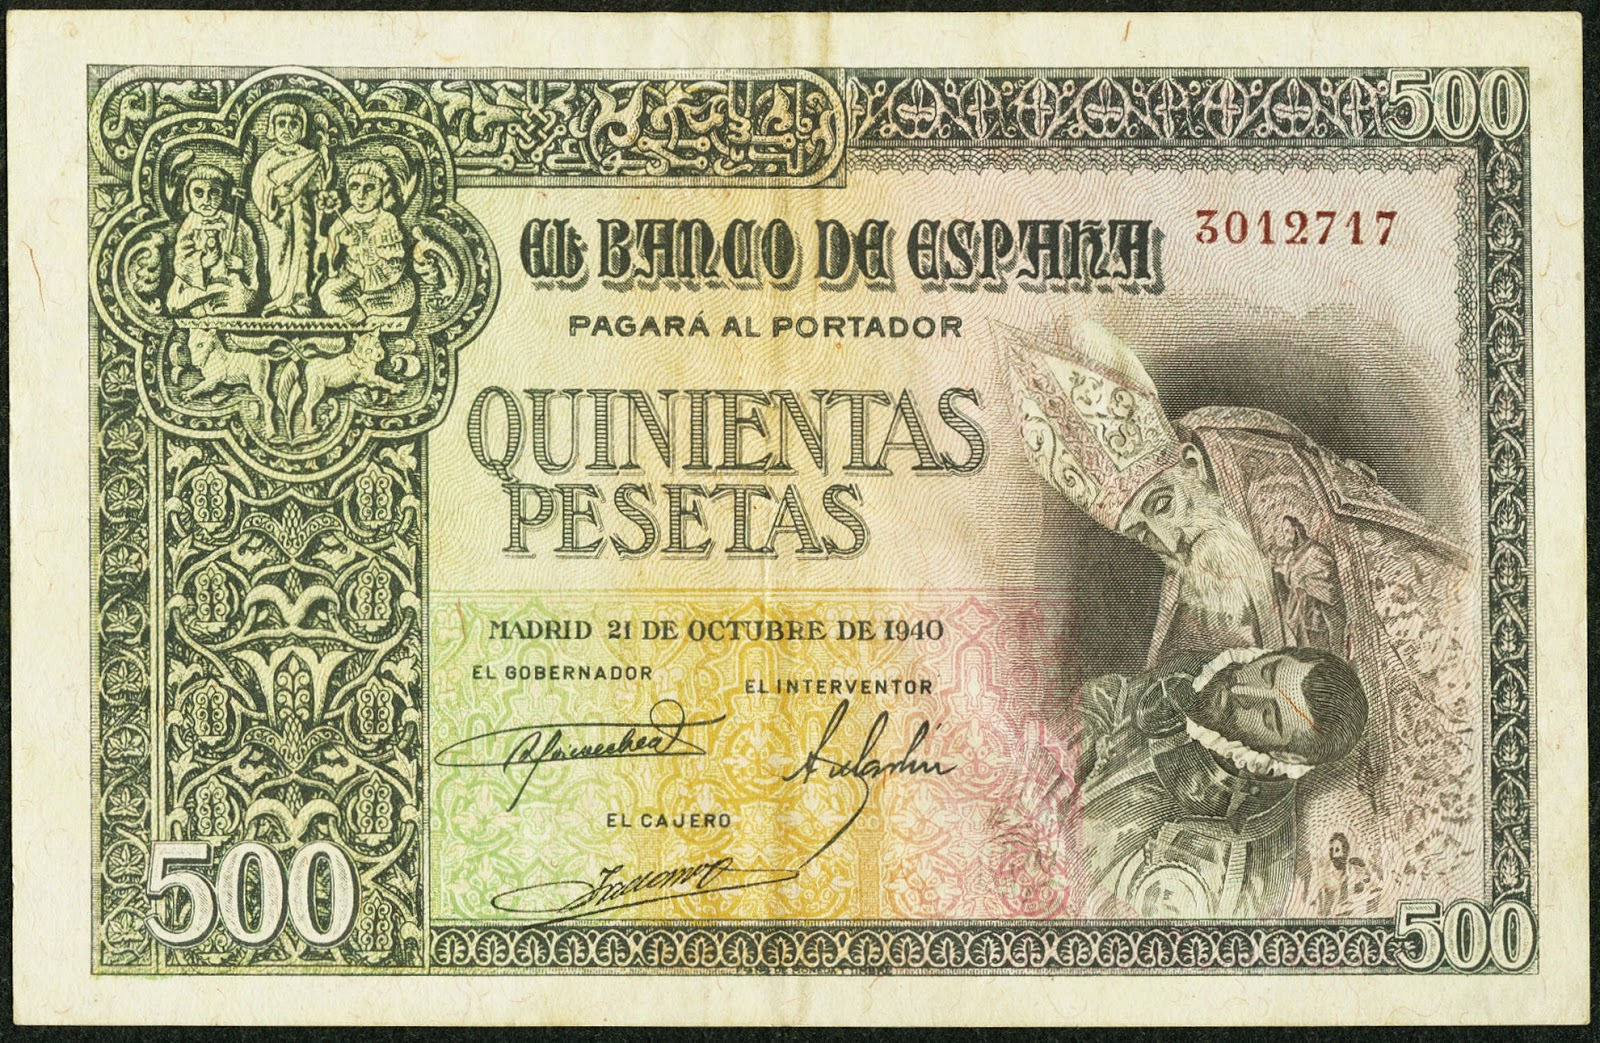 Spain Banknotes 500 Pesetas banknote 1940 The Burial of the Count of Orgaz by El Greco